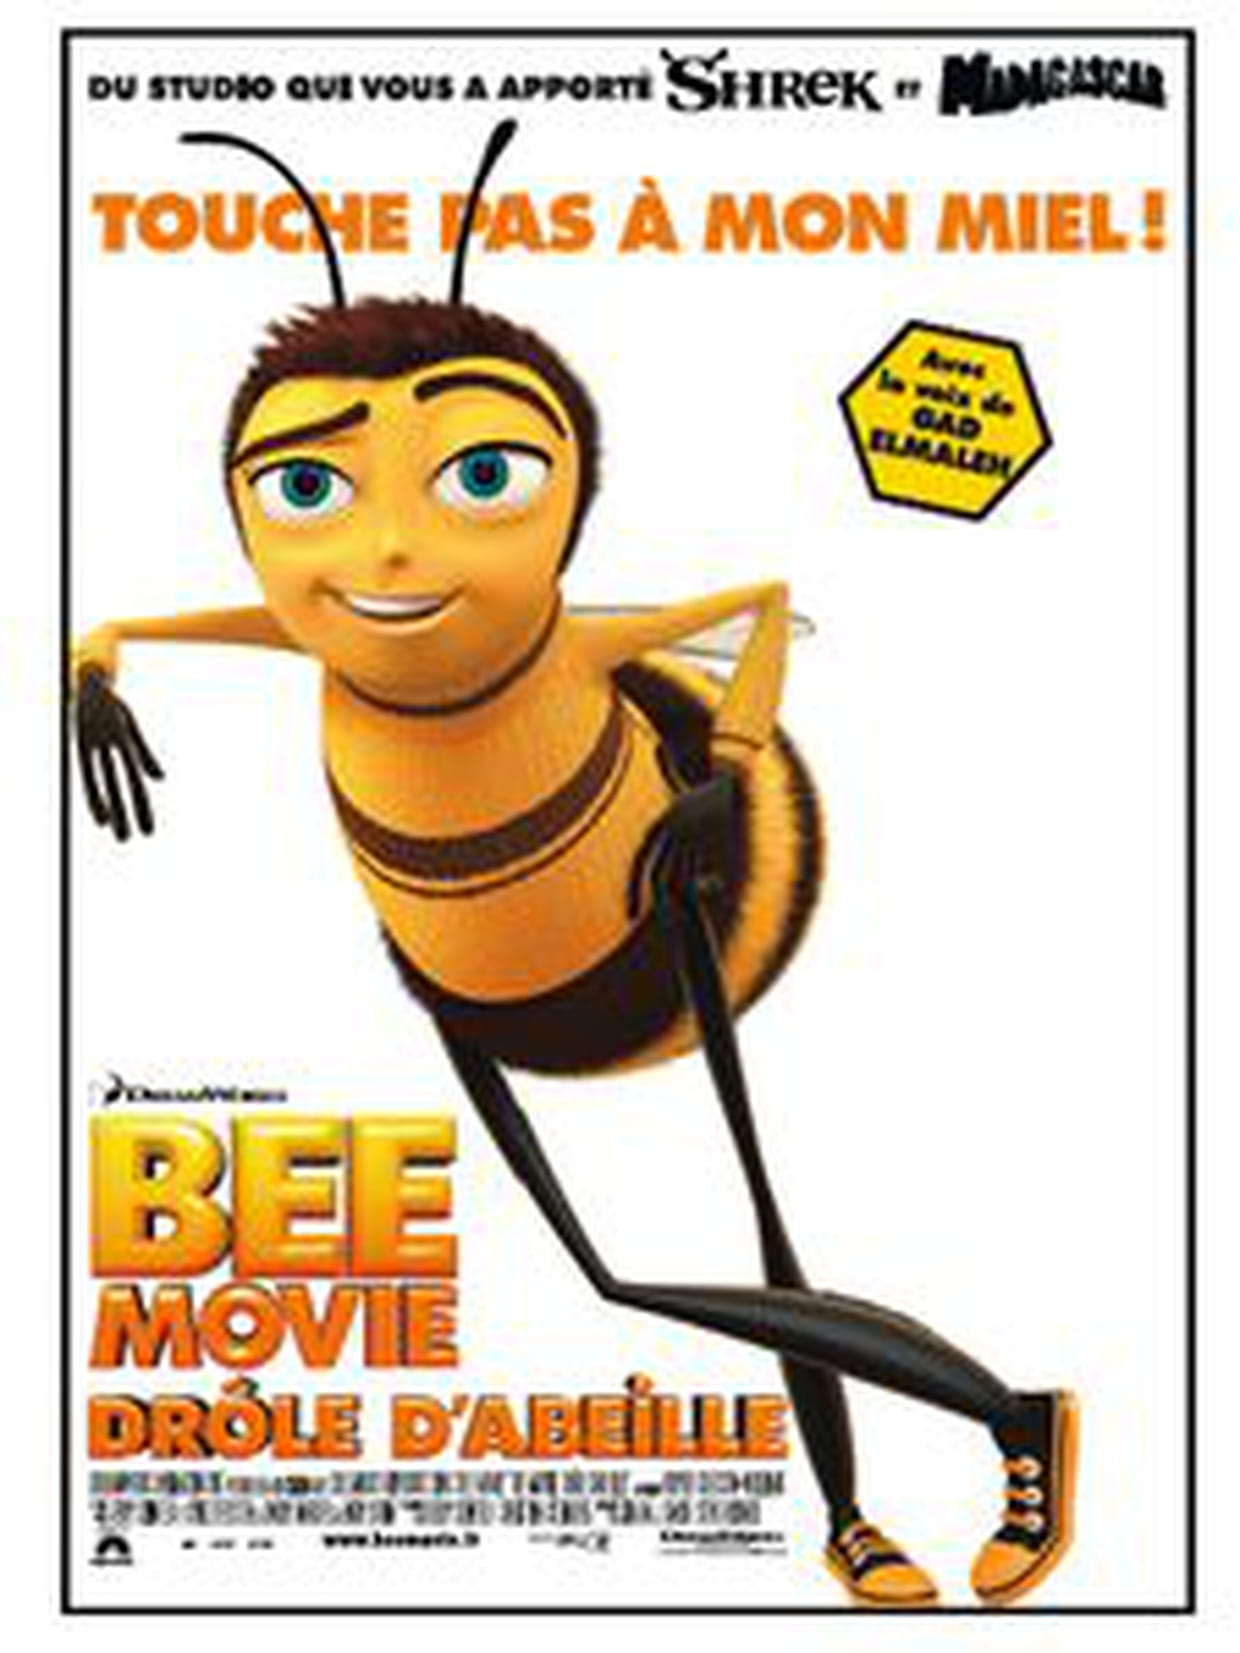 Bee movie - drôle dabeille